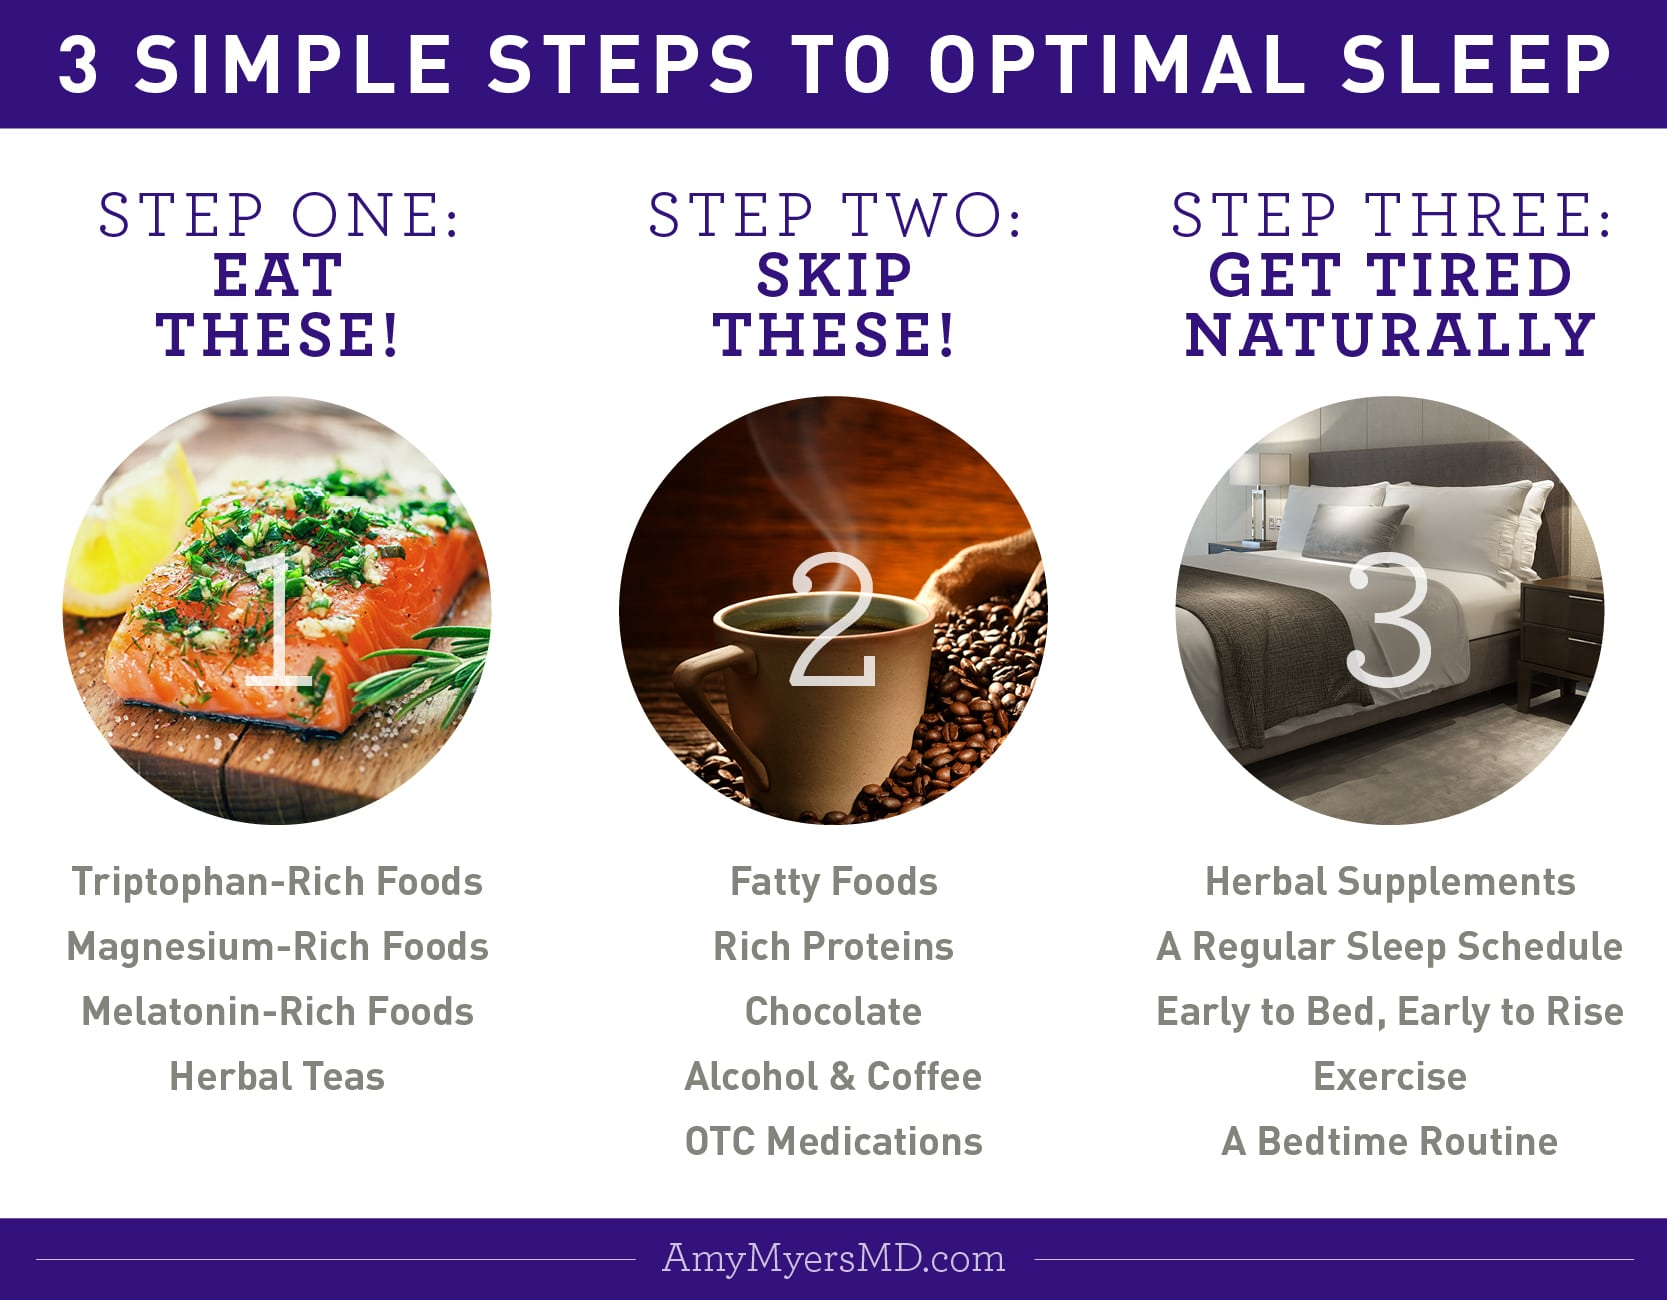 3 simple steps to optimal sleep